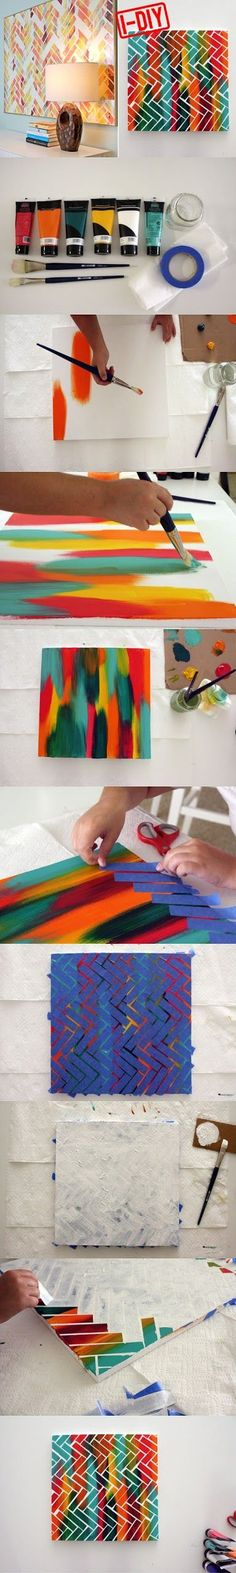 DIY Project Painters Tape Art, pretty awesome and neat that someone shared the idea. Just one thing. This is art, not just a DIY project. Cute Crafts, Crafts To Do, Diy Crafts, Painters Tape Art, Cuadros Diy, Diy Y Manualidades, Creation Deco, Ideias Diy, Diy Wall Art